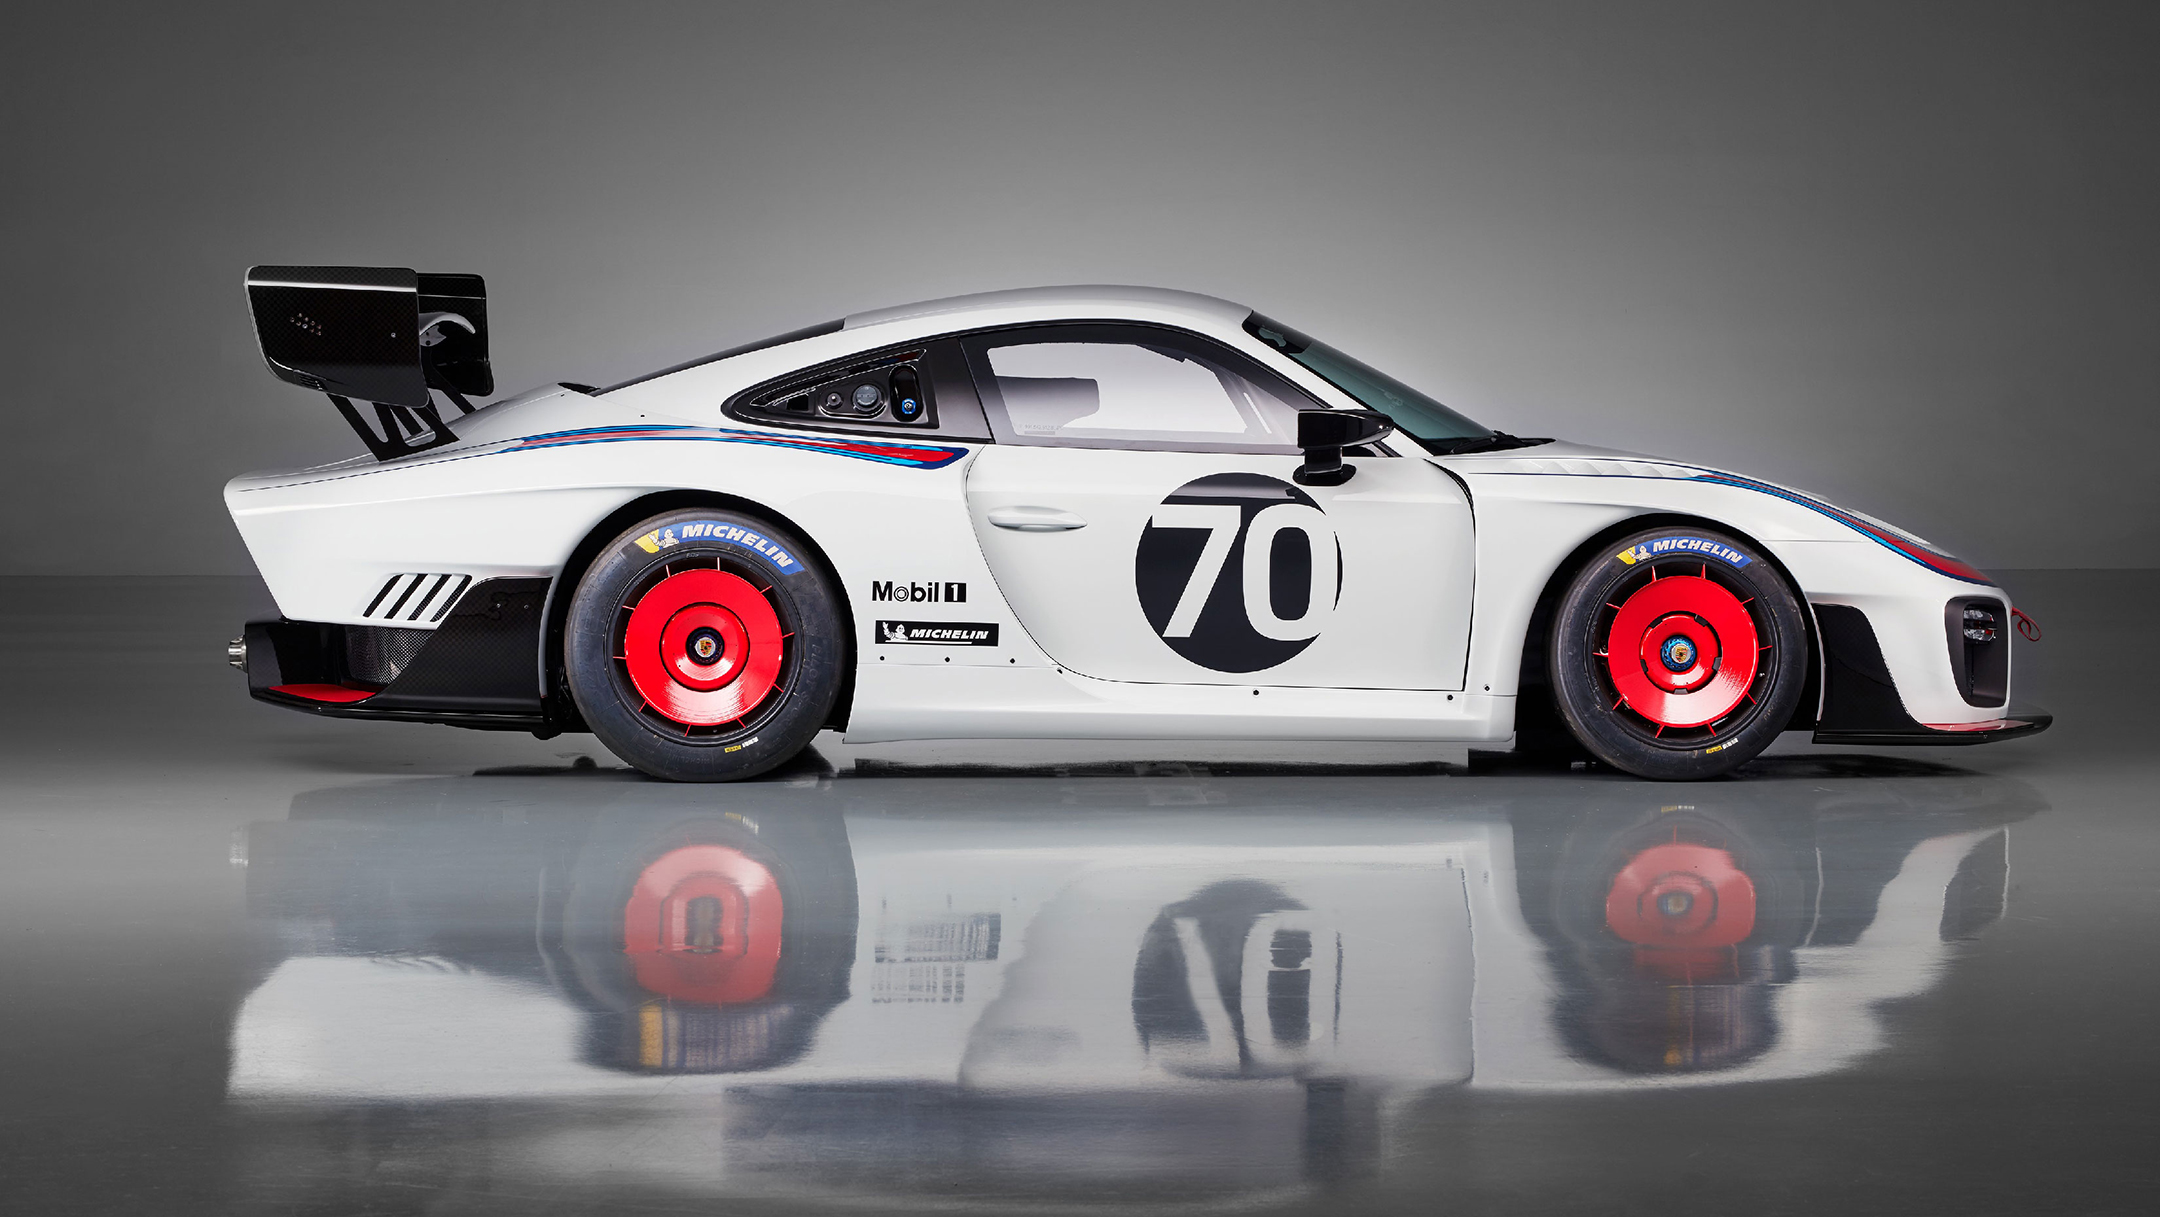 Porsche 935 - 2018 - side-face / profil